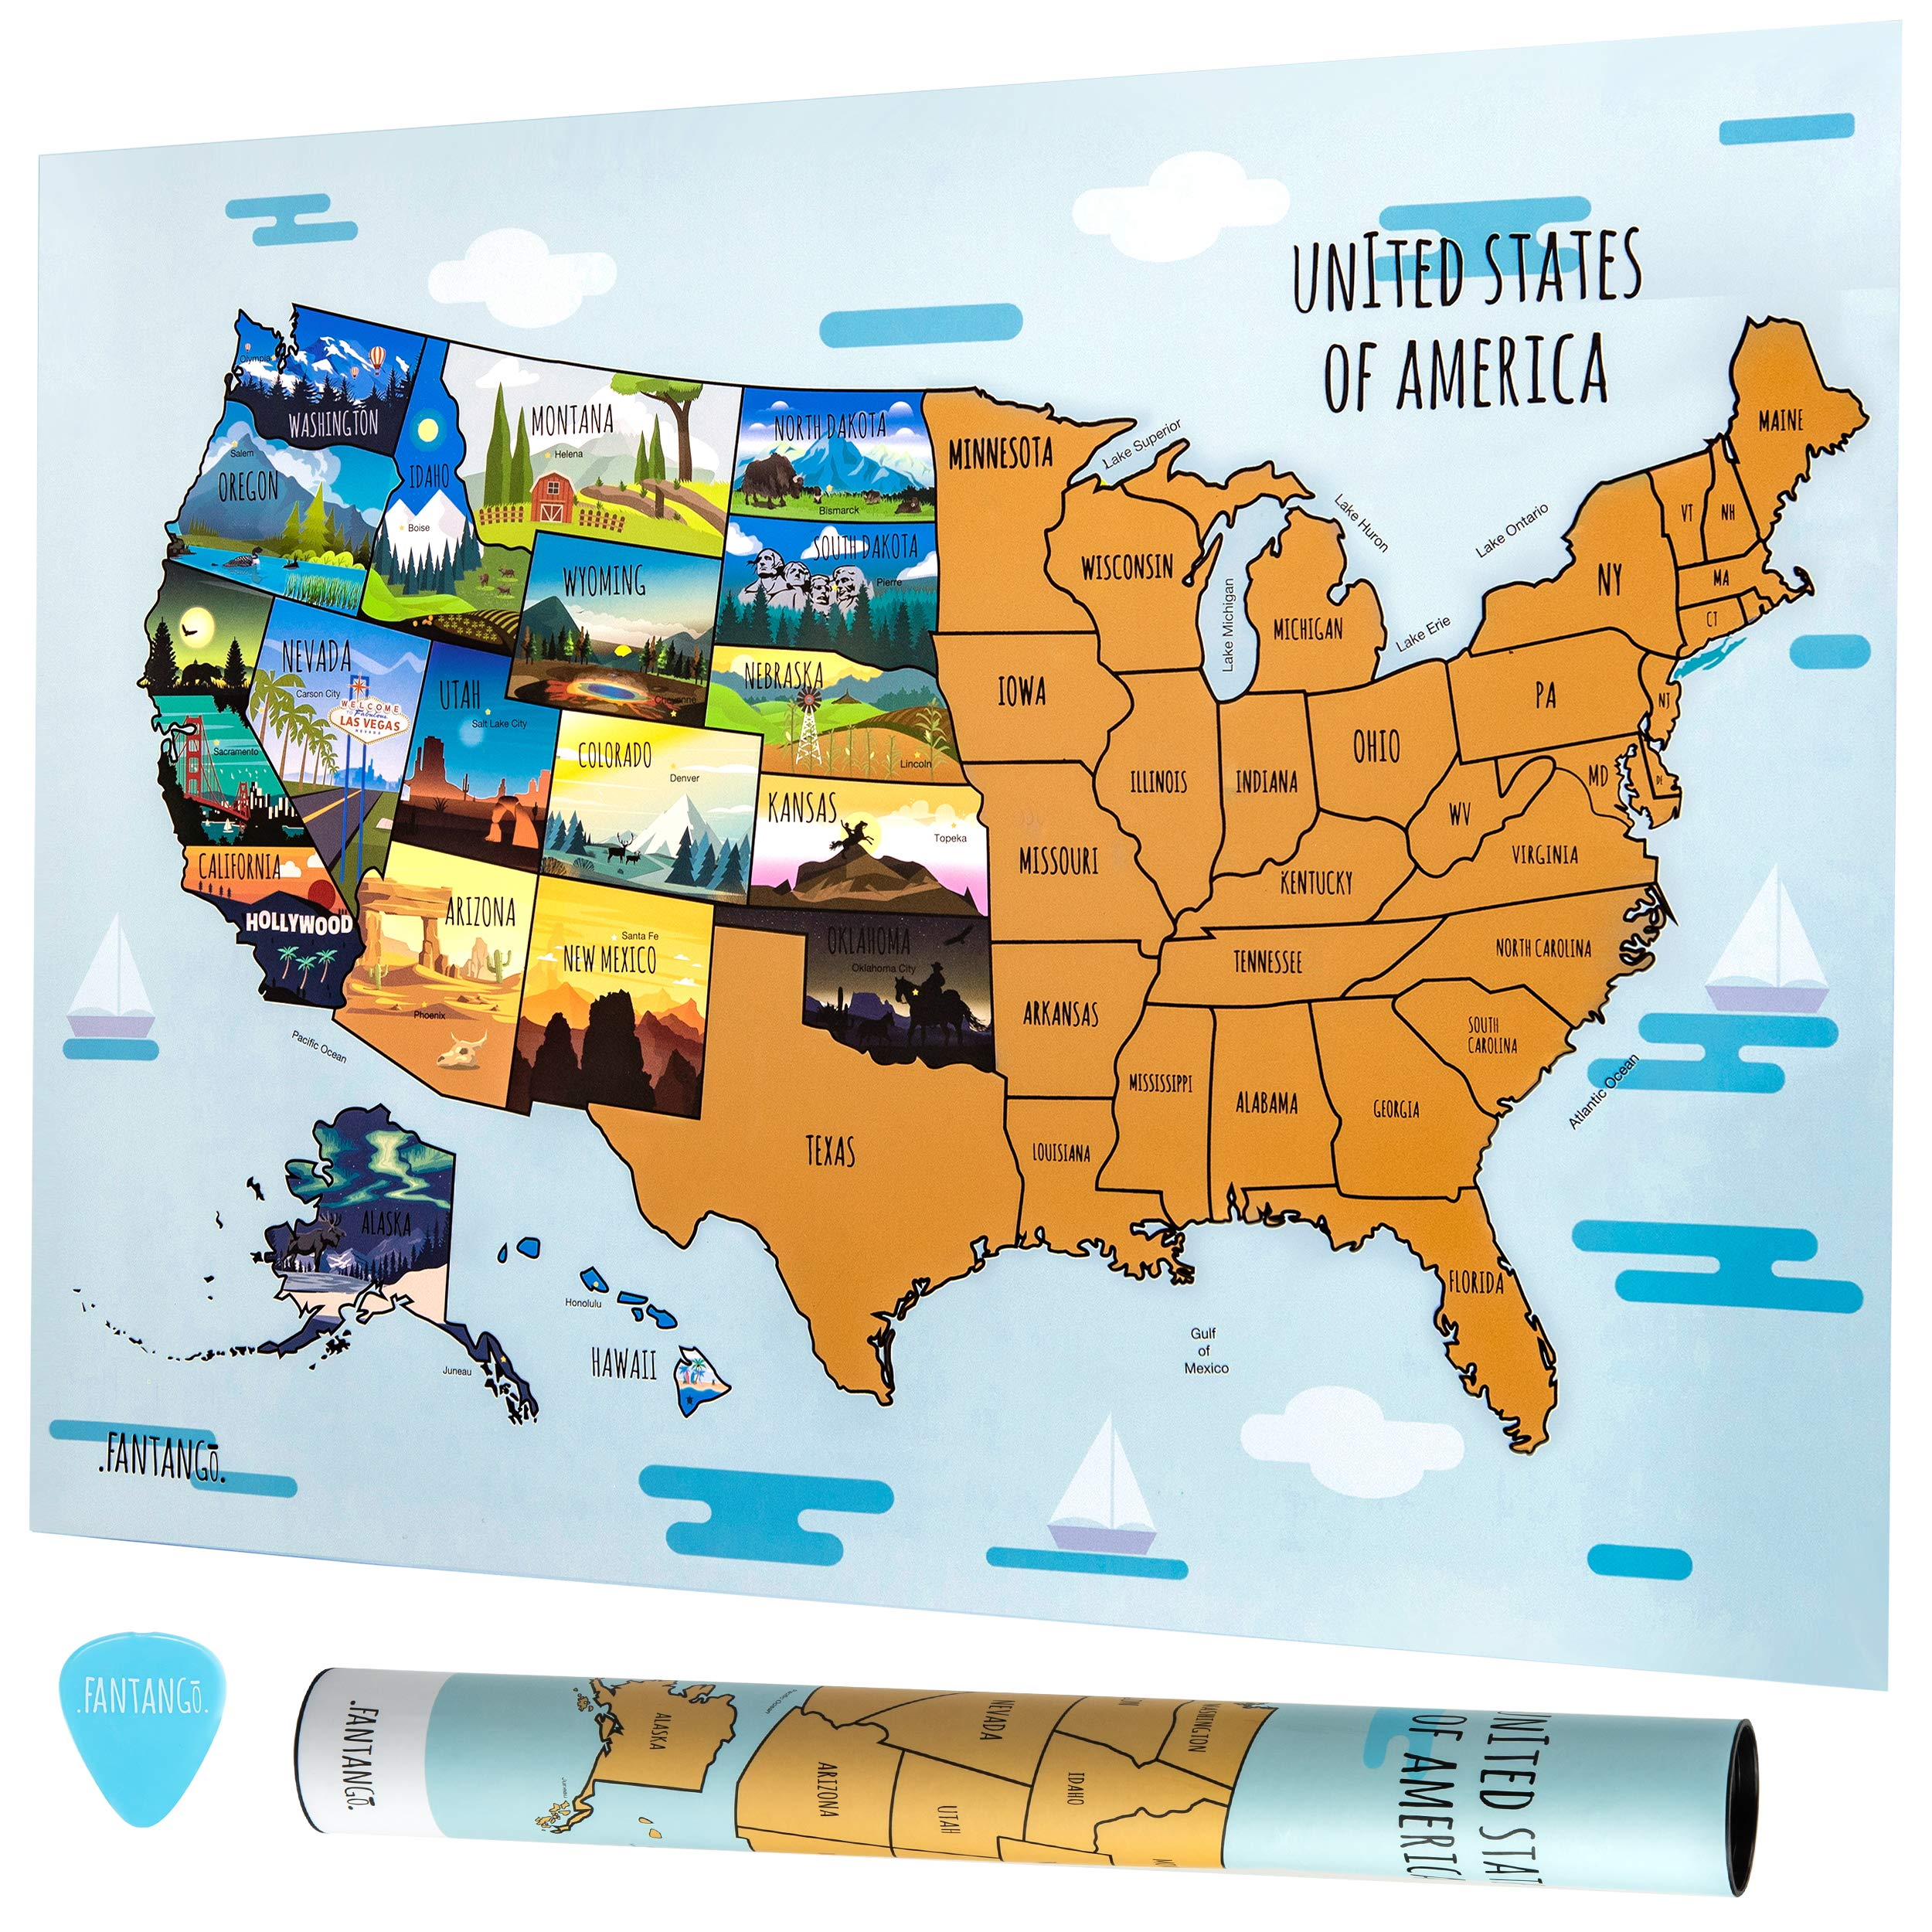 Fantango Scratch Off Map of The United States - 50 State 18'' x 24'' Paper Crafts Activity Poster - US North America with Capitols, Scratching Pick - USA Travel Scratchoff Sheet for Kids, Adults by Fantango